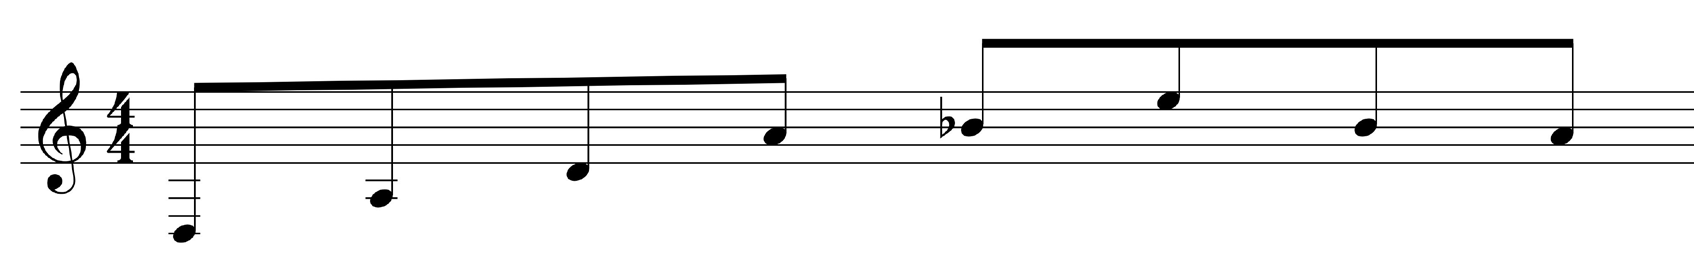 Figure 4 : Arpège de Crash – transcription.